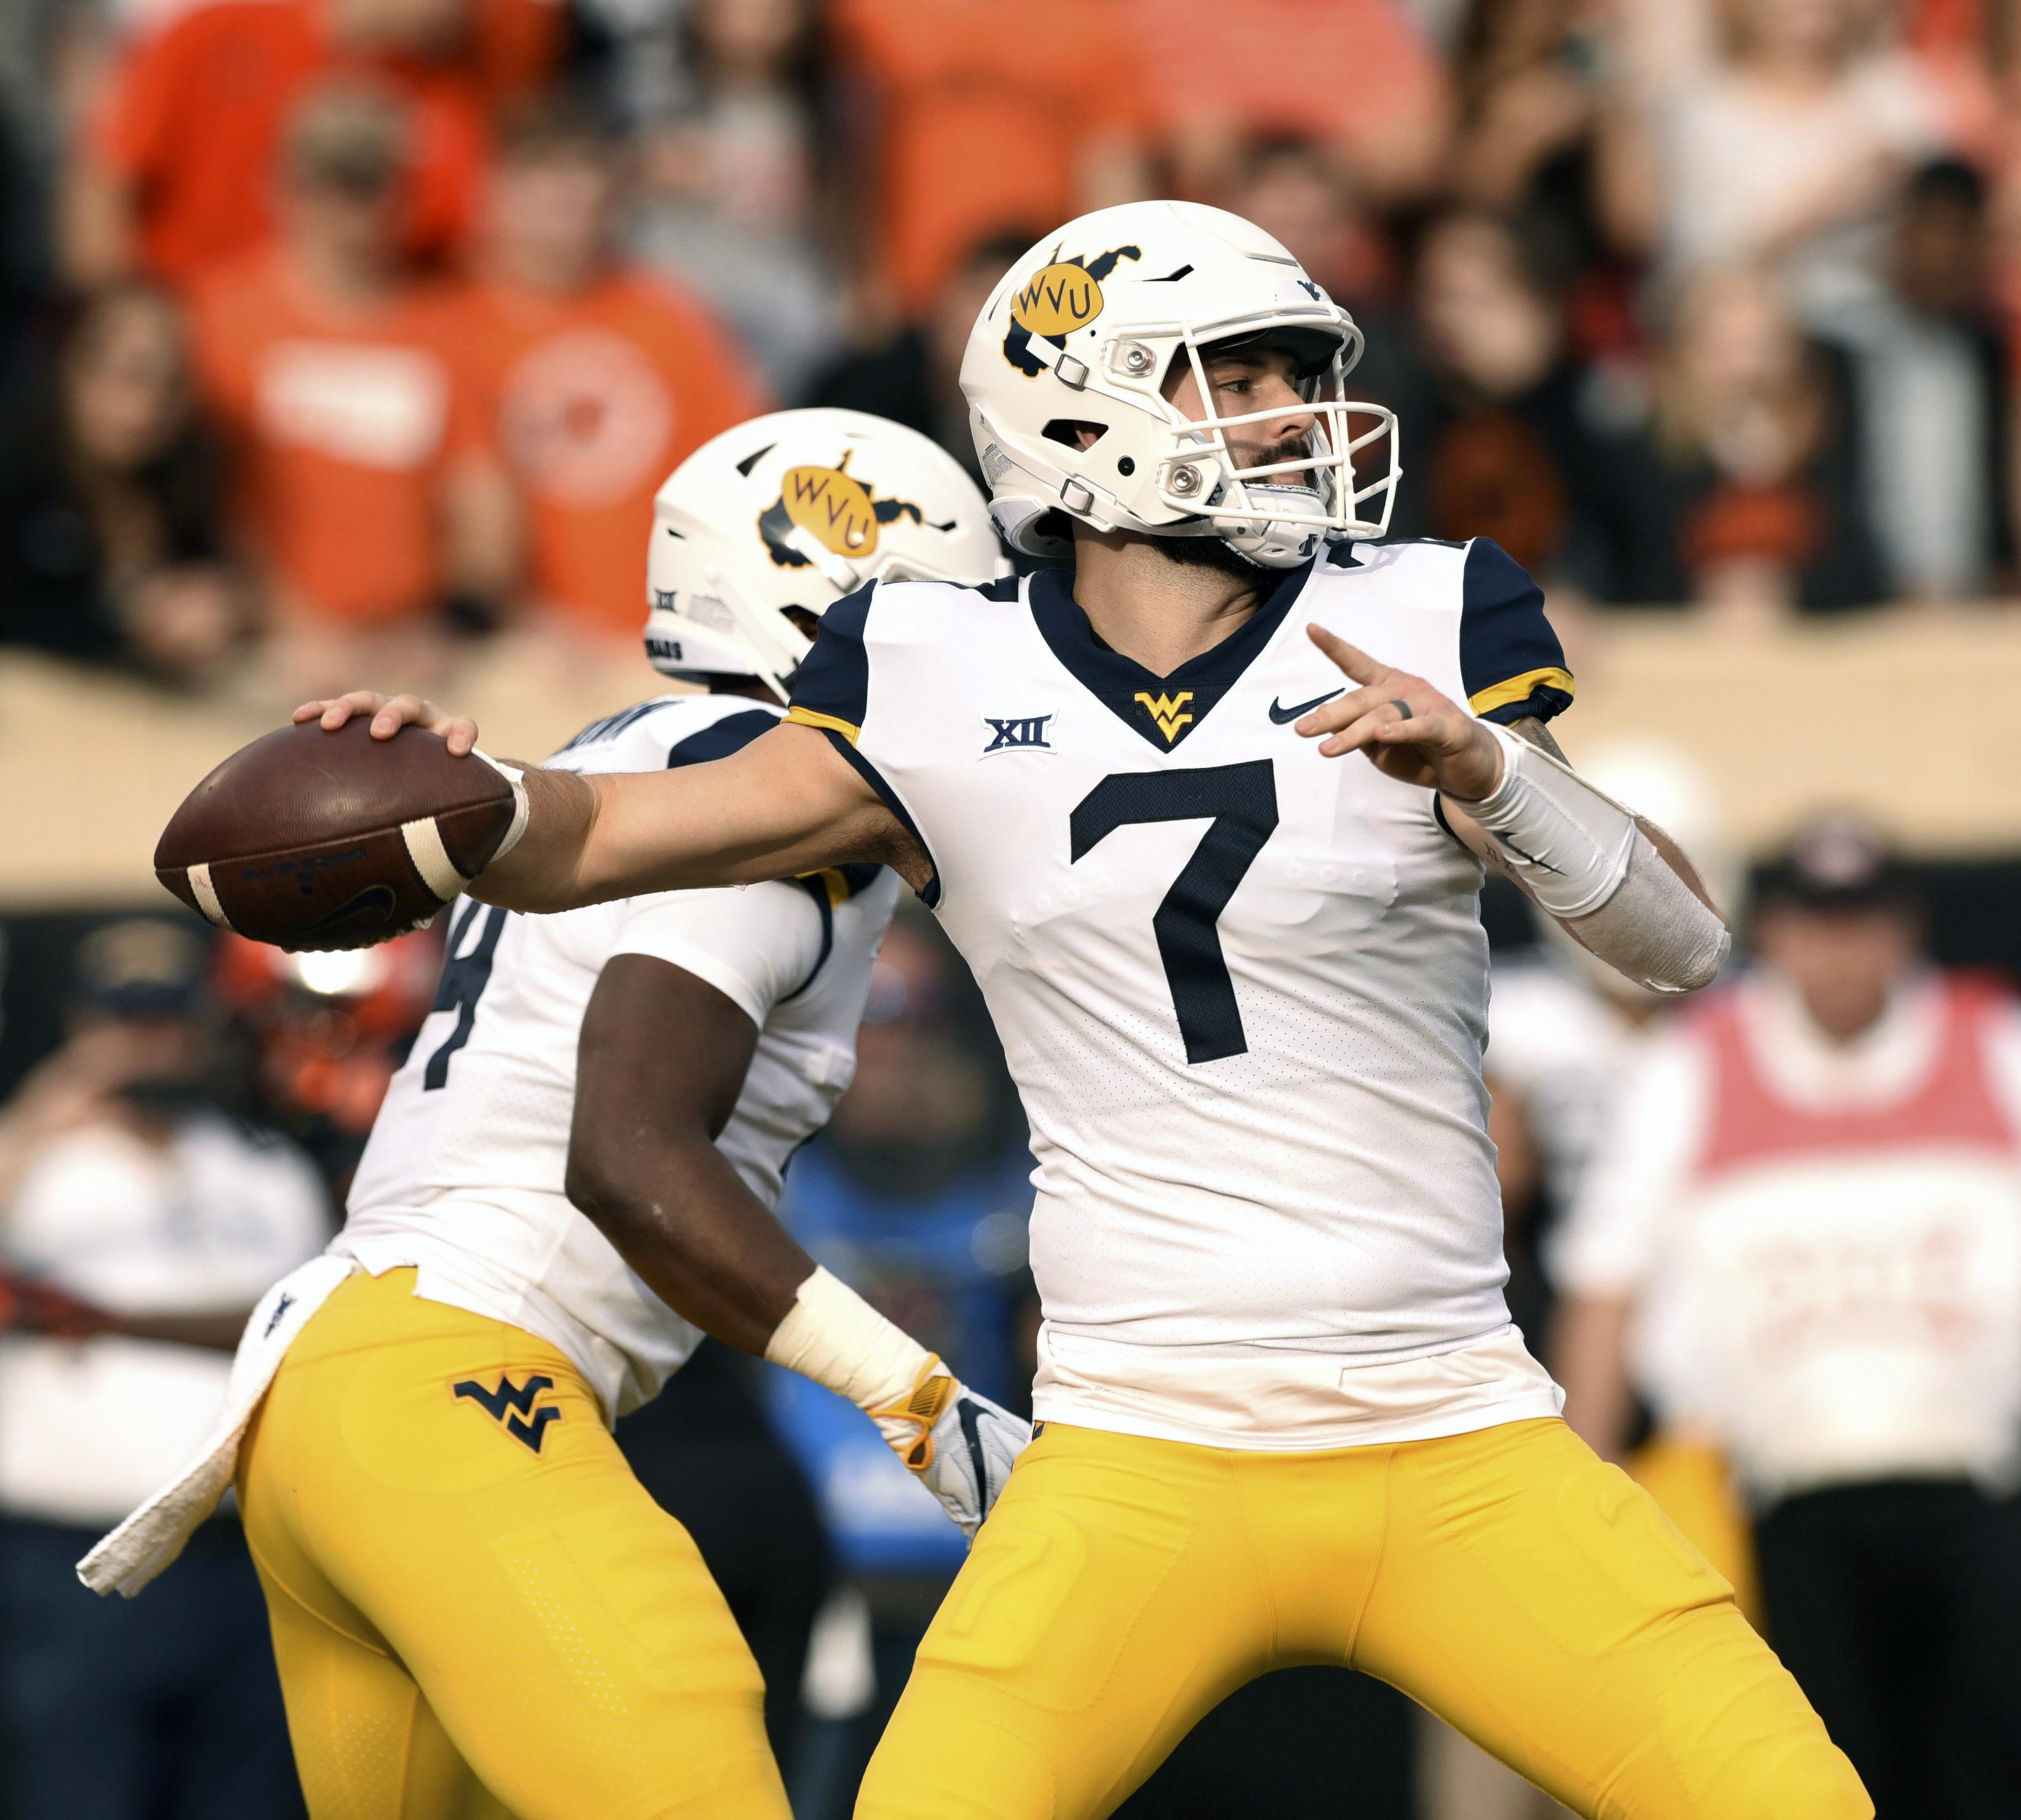 West Virginia quarterback Will Grier meets with Redskins over sushi: report